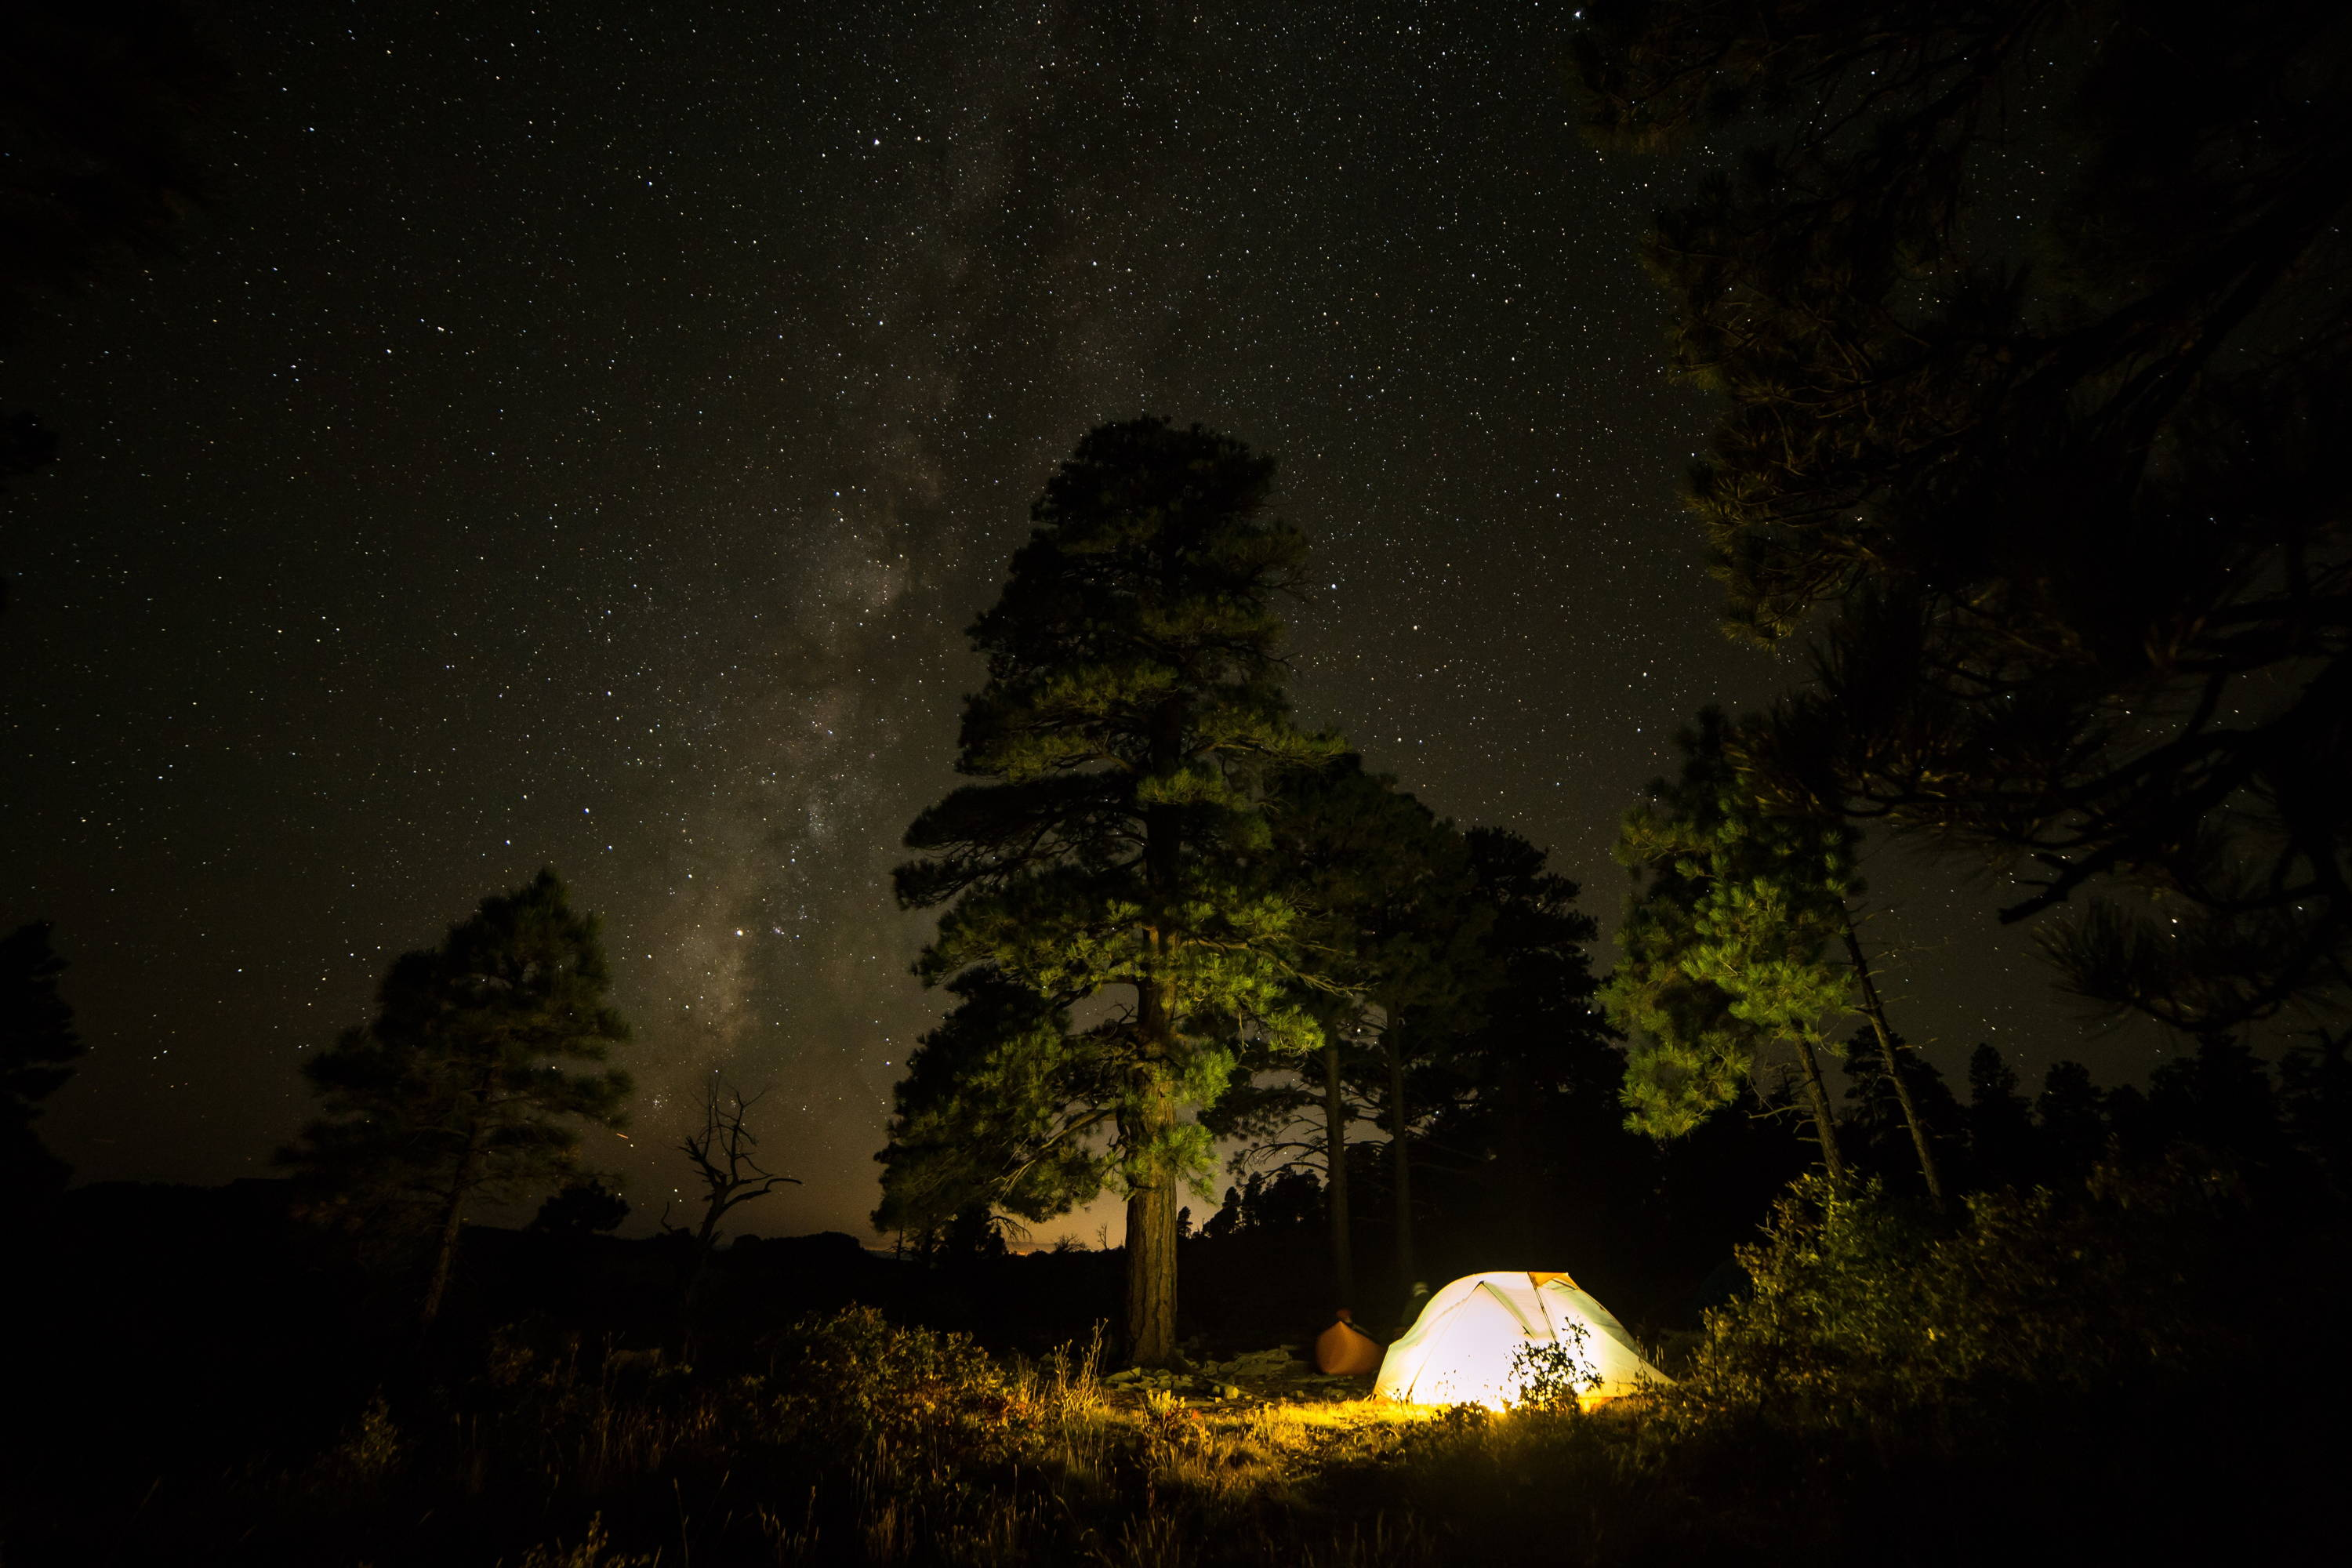 Best Backpacking & Camping Tents 2019. Night starts light up the sky above pine trees and a backpacking tent.